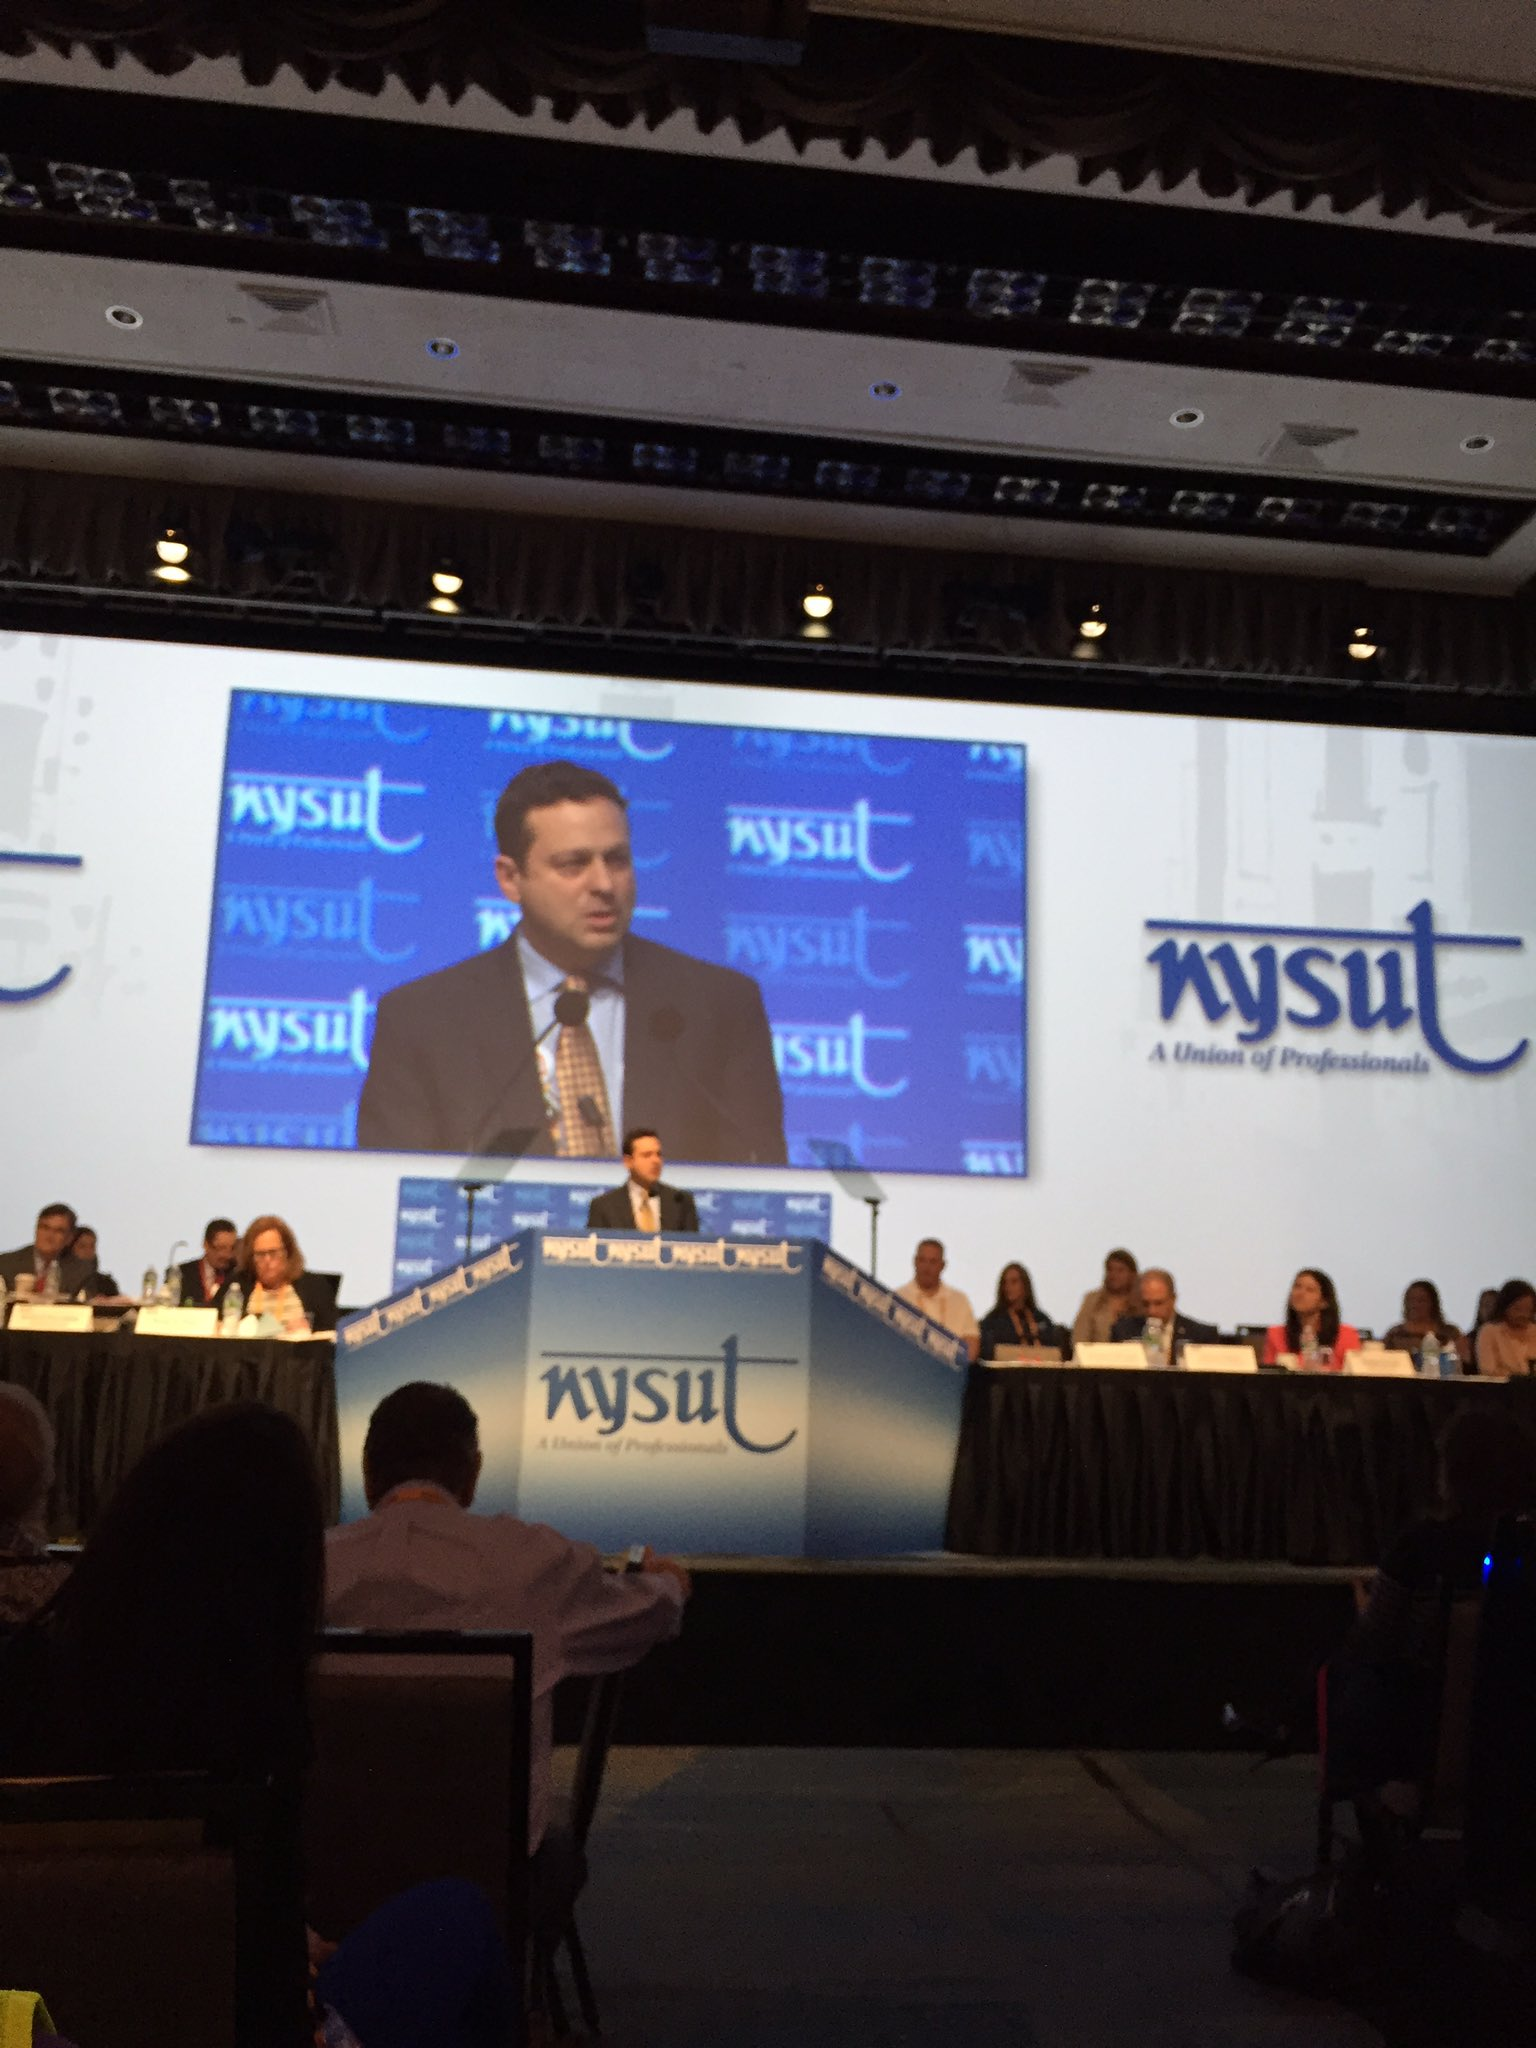 ".@nysut VP @PaulPecorale ""Our union is committed to what is right, just, and fair"" #nysutra2017 #NYSUTRA https://t.co/LM9XwrLqHx"